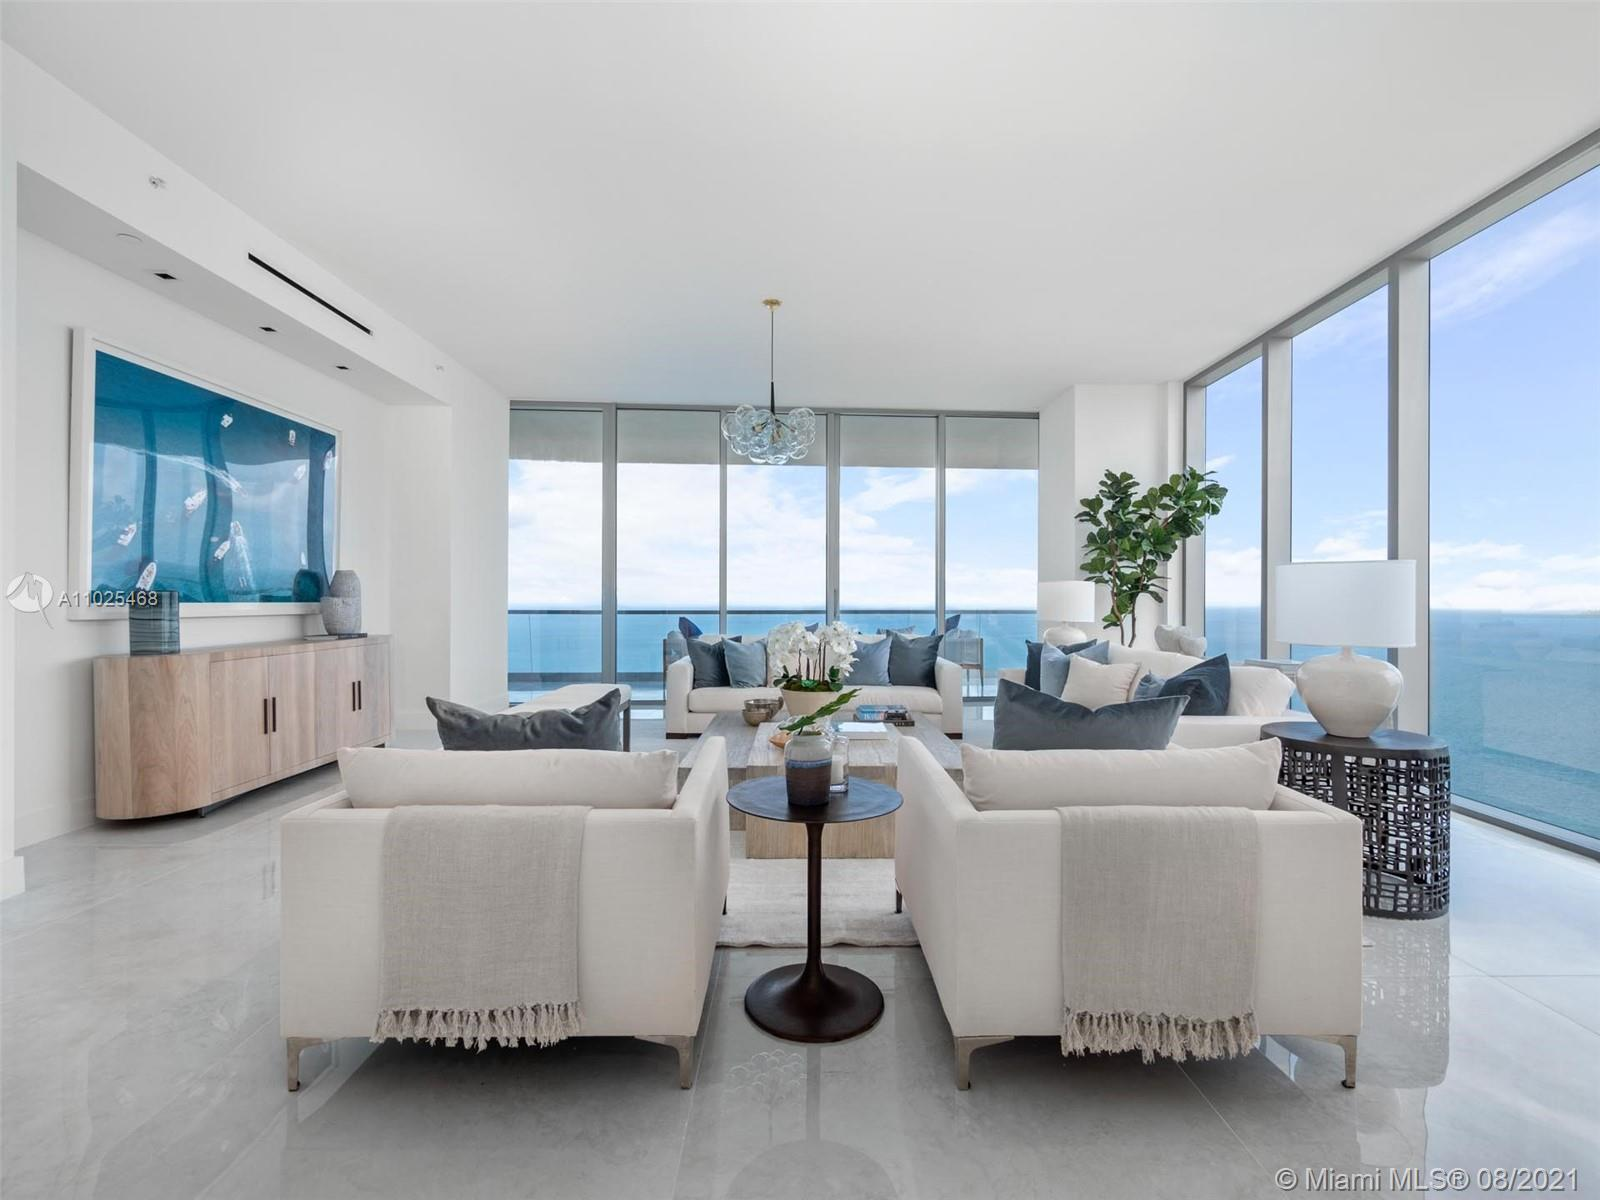 STUNNING RESIDENCE WITH BREATHTAKING VIEWS FROM THE 43TH FLOOR IN THE BRAND NEW TURNBERRY OCEAN CLUB. The exquisite beachfront sky scraper FEAUTRES Six Levels of Amenities: Sky Club, Theater, 3 Swimming Pools, Pool Bar, Restaurant & More. This one of a kind four bed 5 1/2 bathroon unit features 11 ft ceiling heights and an upgraded white Snaidero Kitchen with all top of the line wolf/subzero appliances. Turnberry Ocean Club offers an unprecedented level of luxury for every lifestyle.  UNIT COMES WITH FLOORS INSTALLED*****